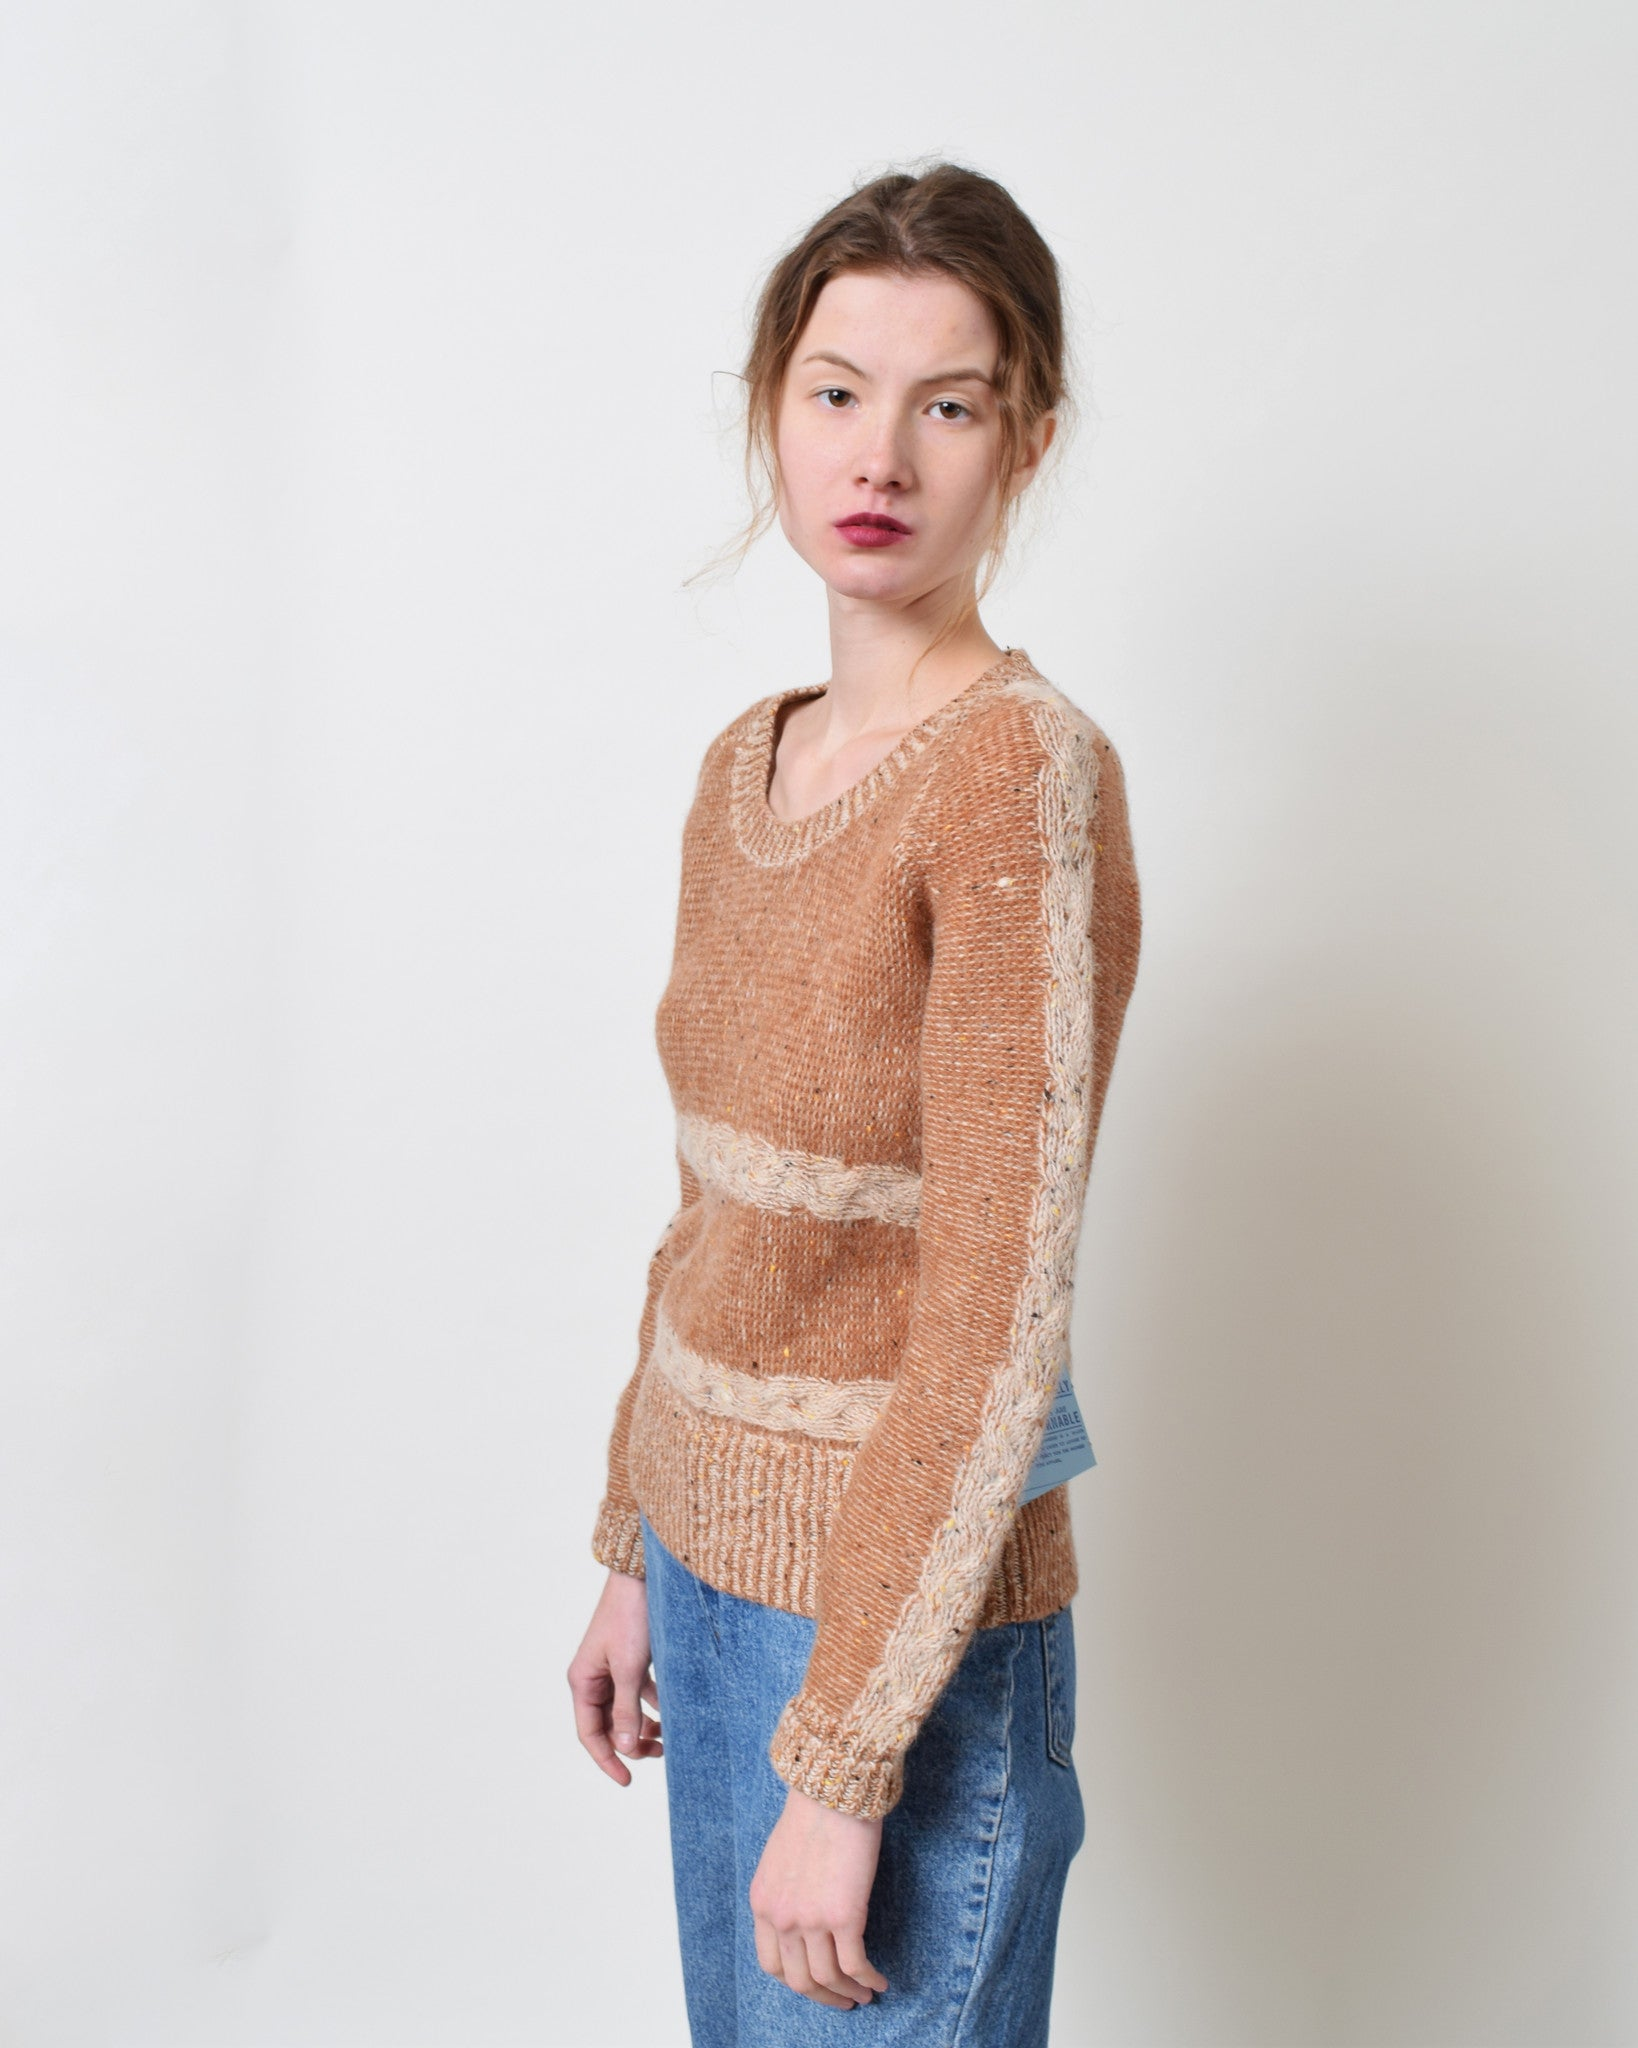 Vintage 1970s Tawny Wool Sweater